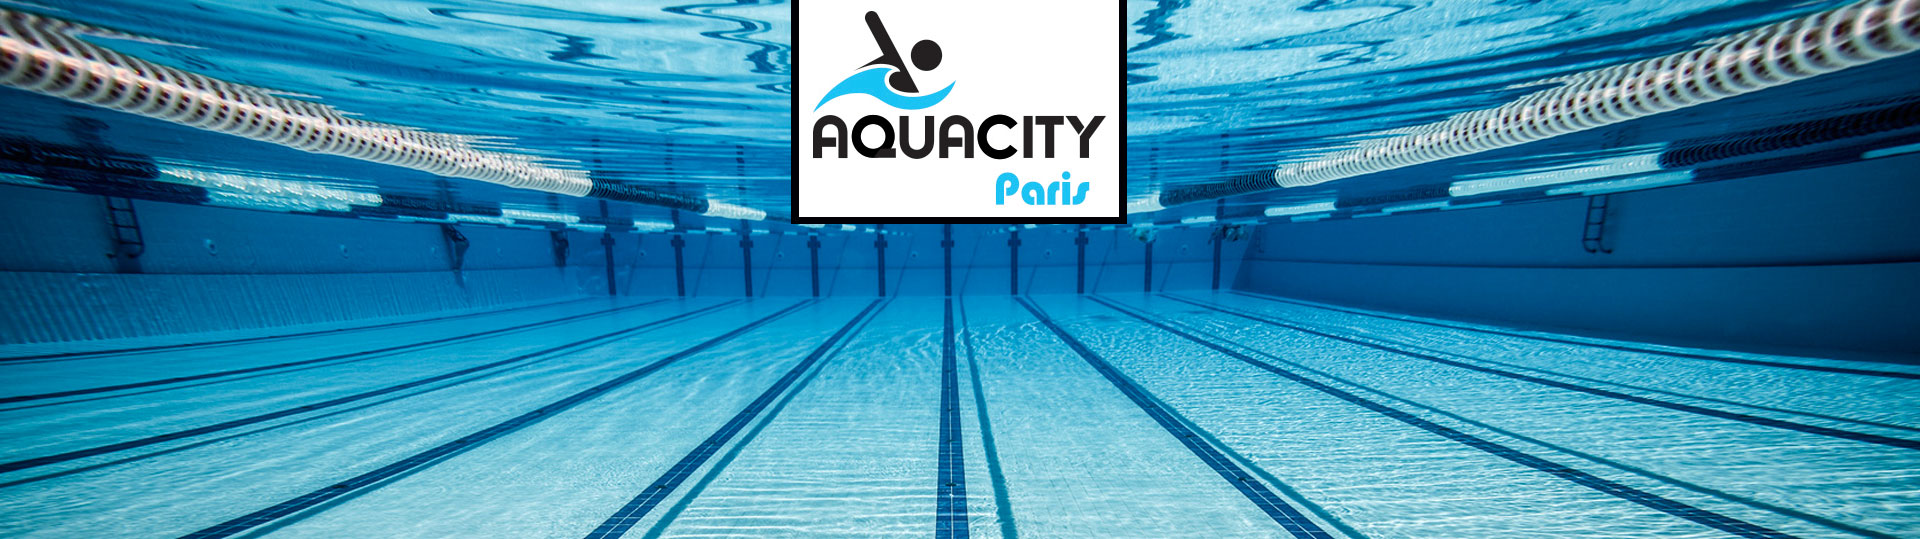 Slider logo Aquacity Paris